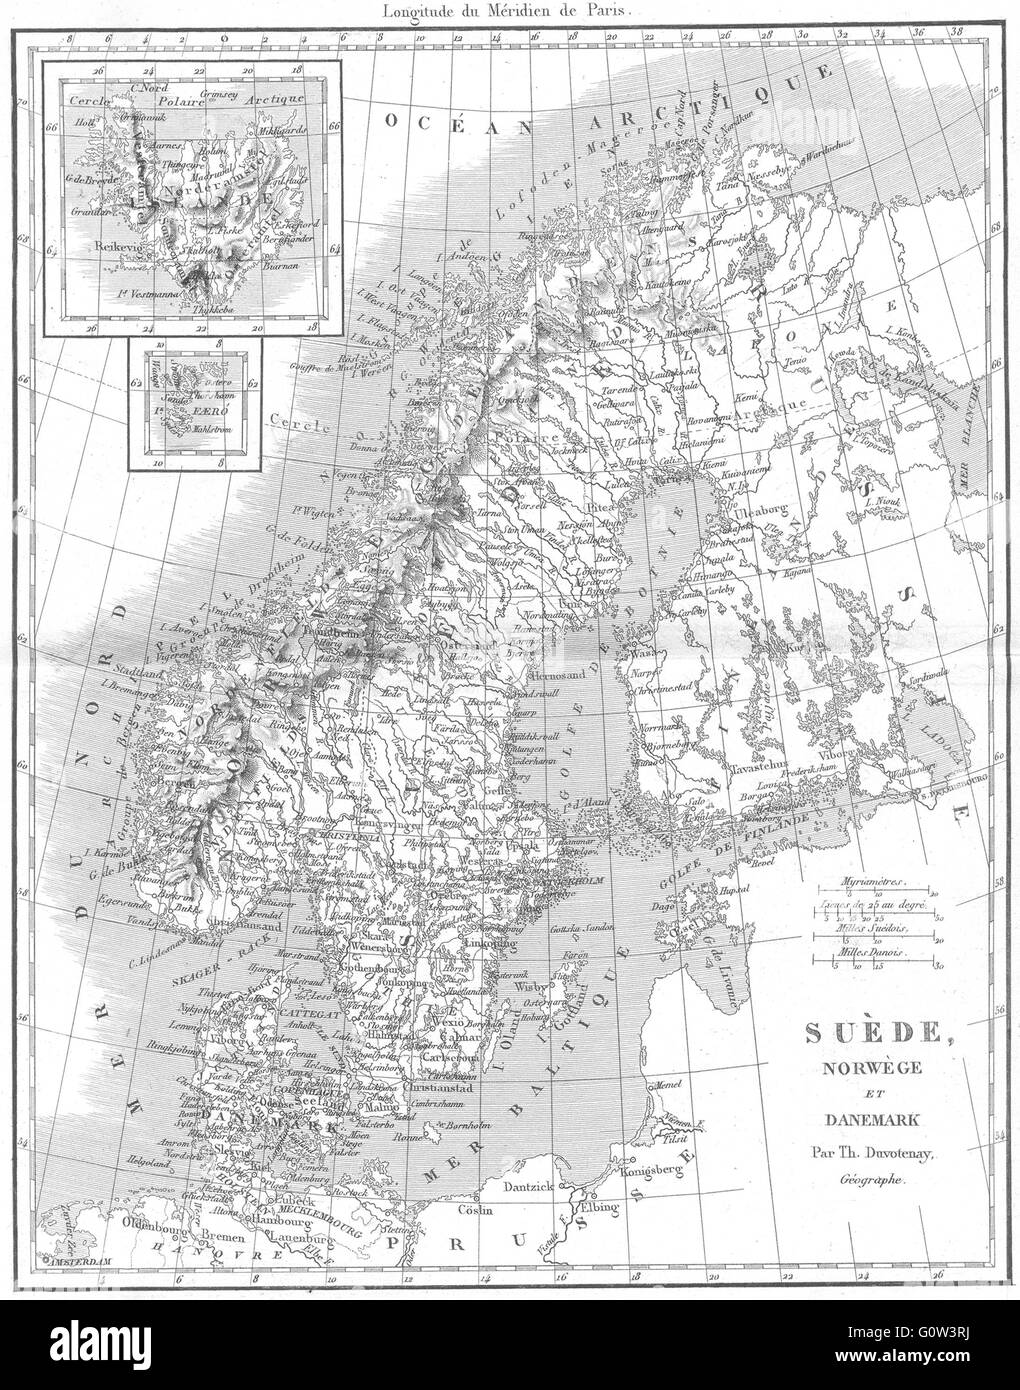 Map Norway Black and White Stock Photos & Images - Alamy